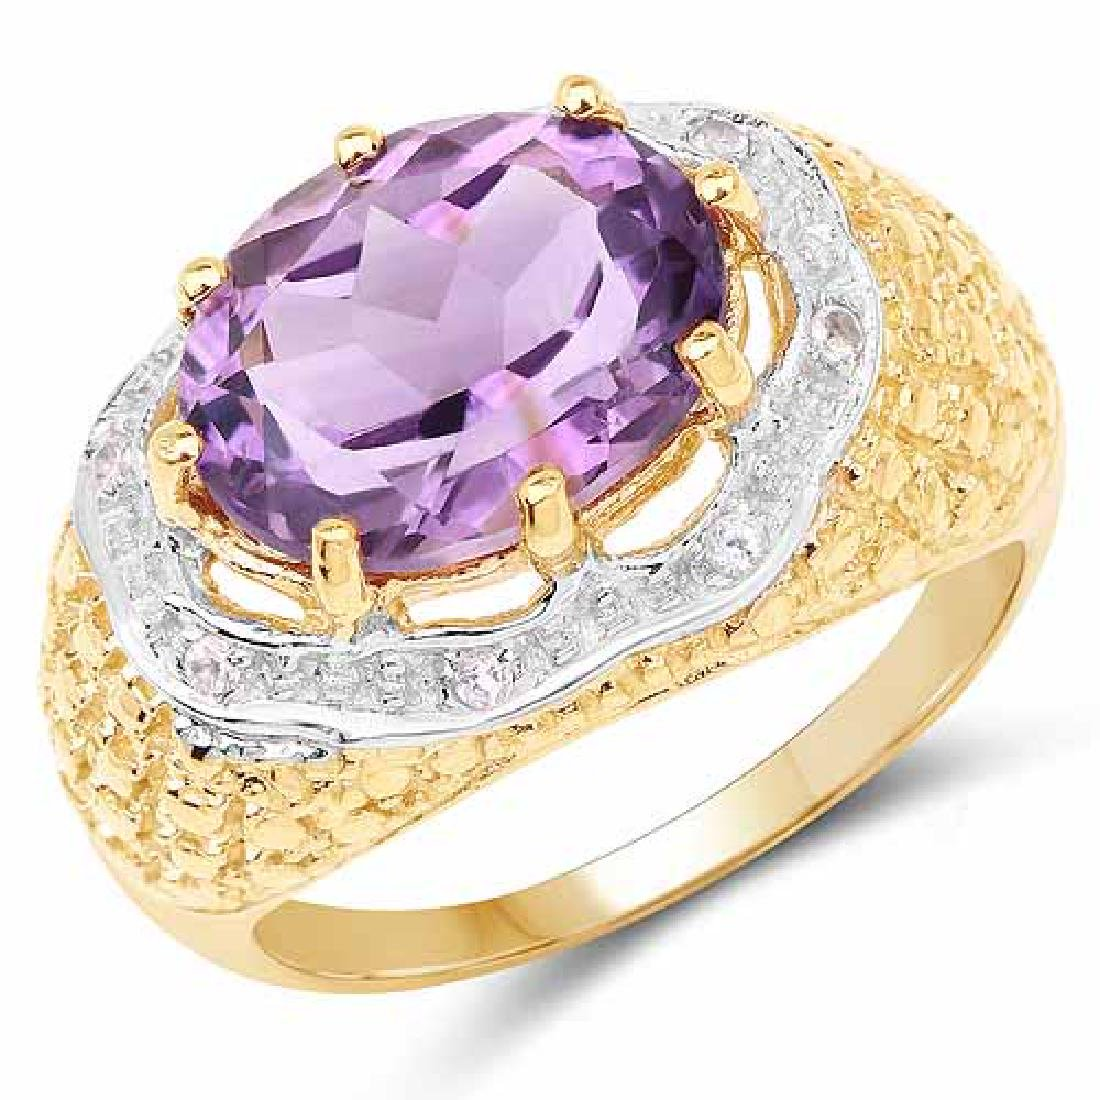 14K Yellow Gold Plated 3.92 Carat Genuine Amethyst and